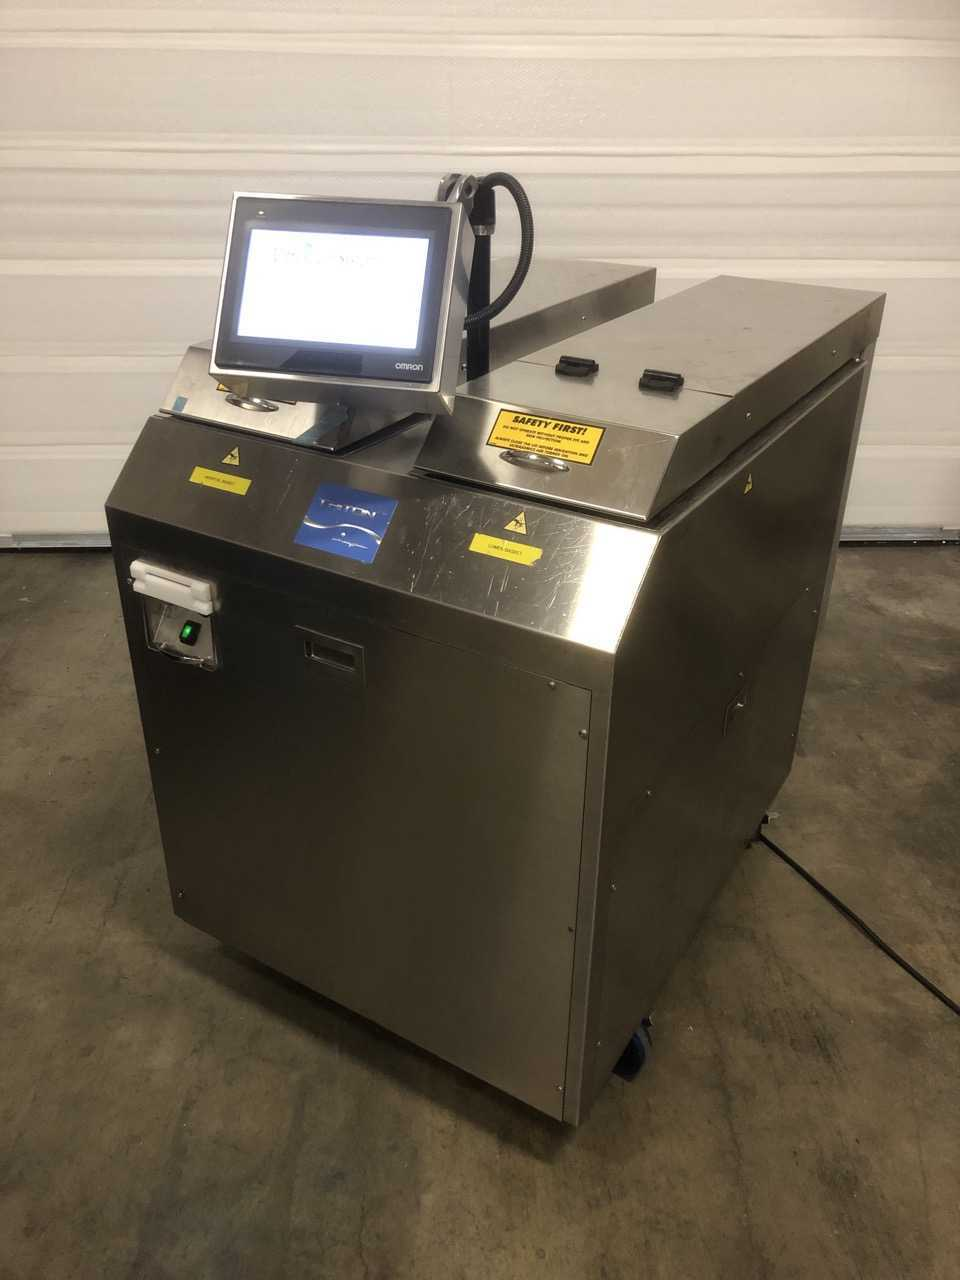 Endoscopy Cleaning Room: Ultra Clean System, Inc. XL72 Double Basin Ultrasonic